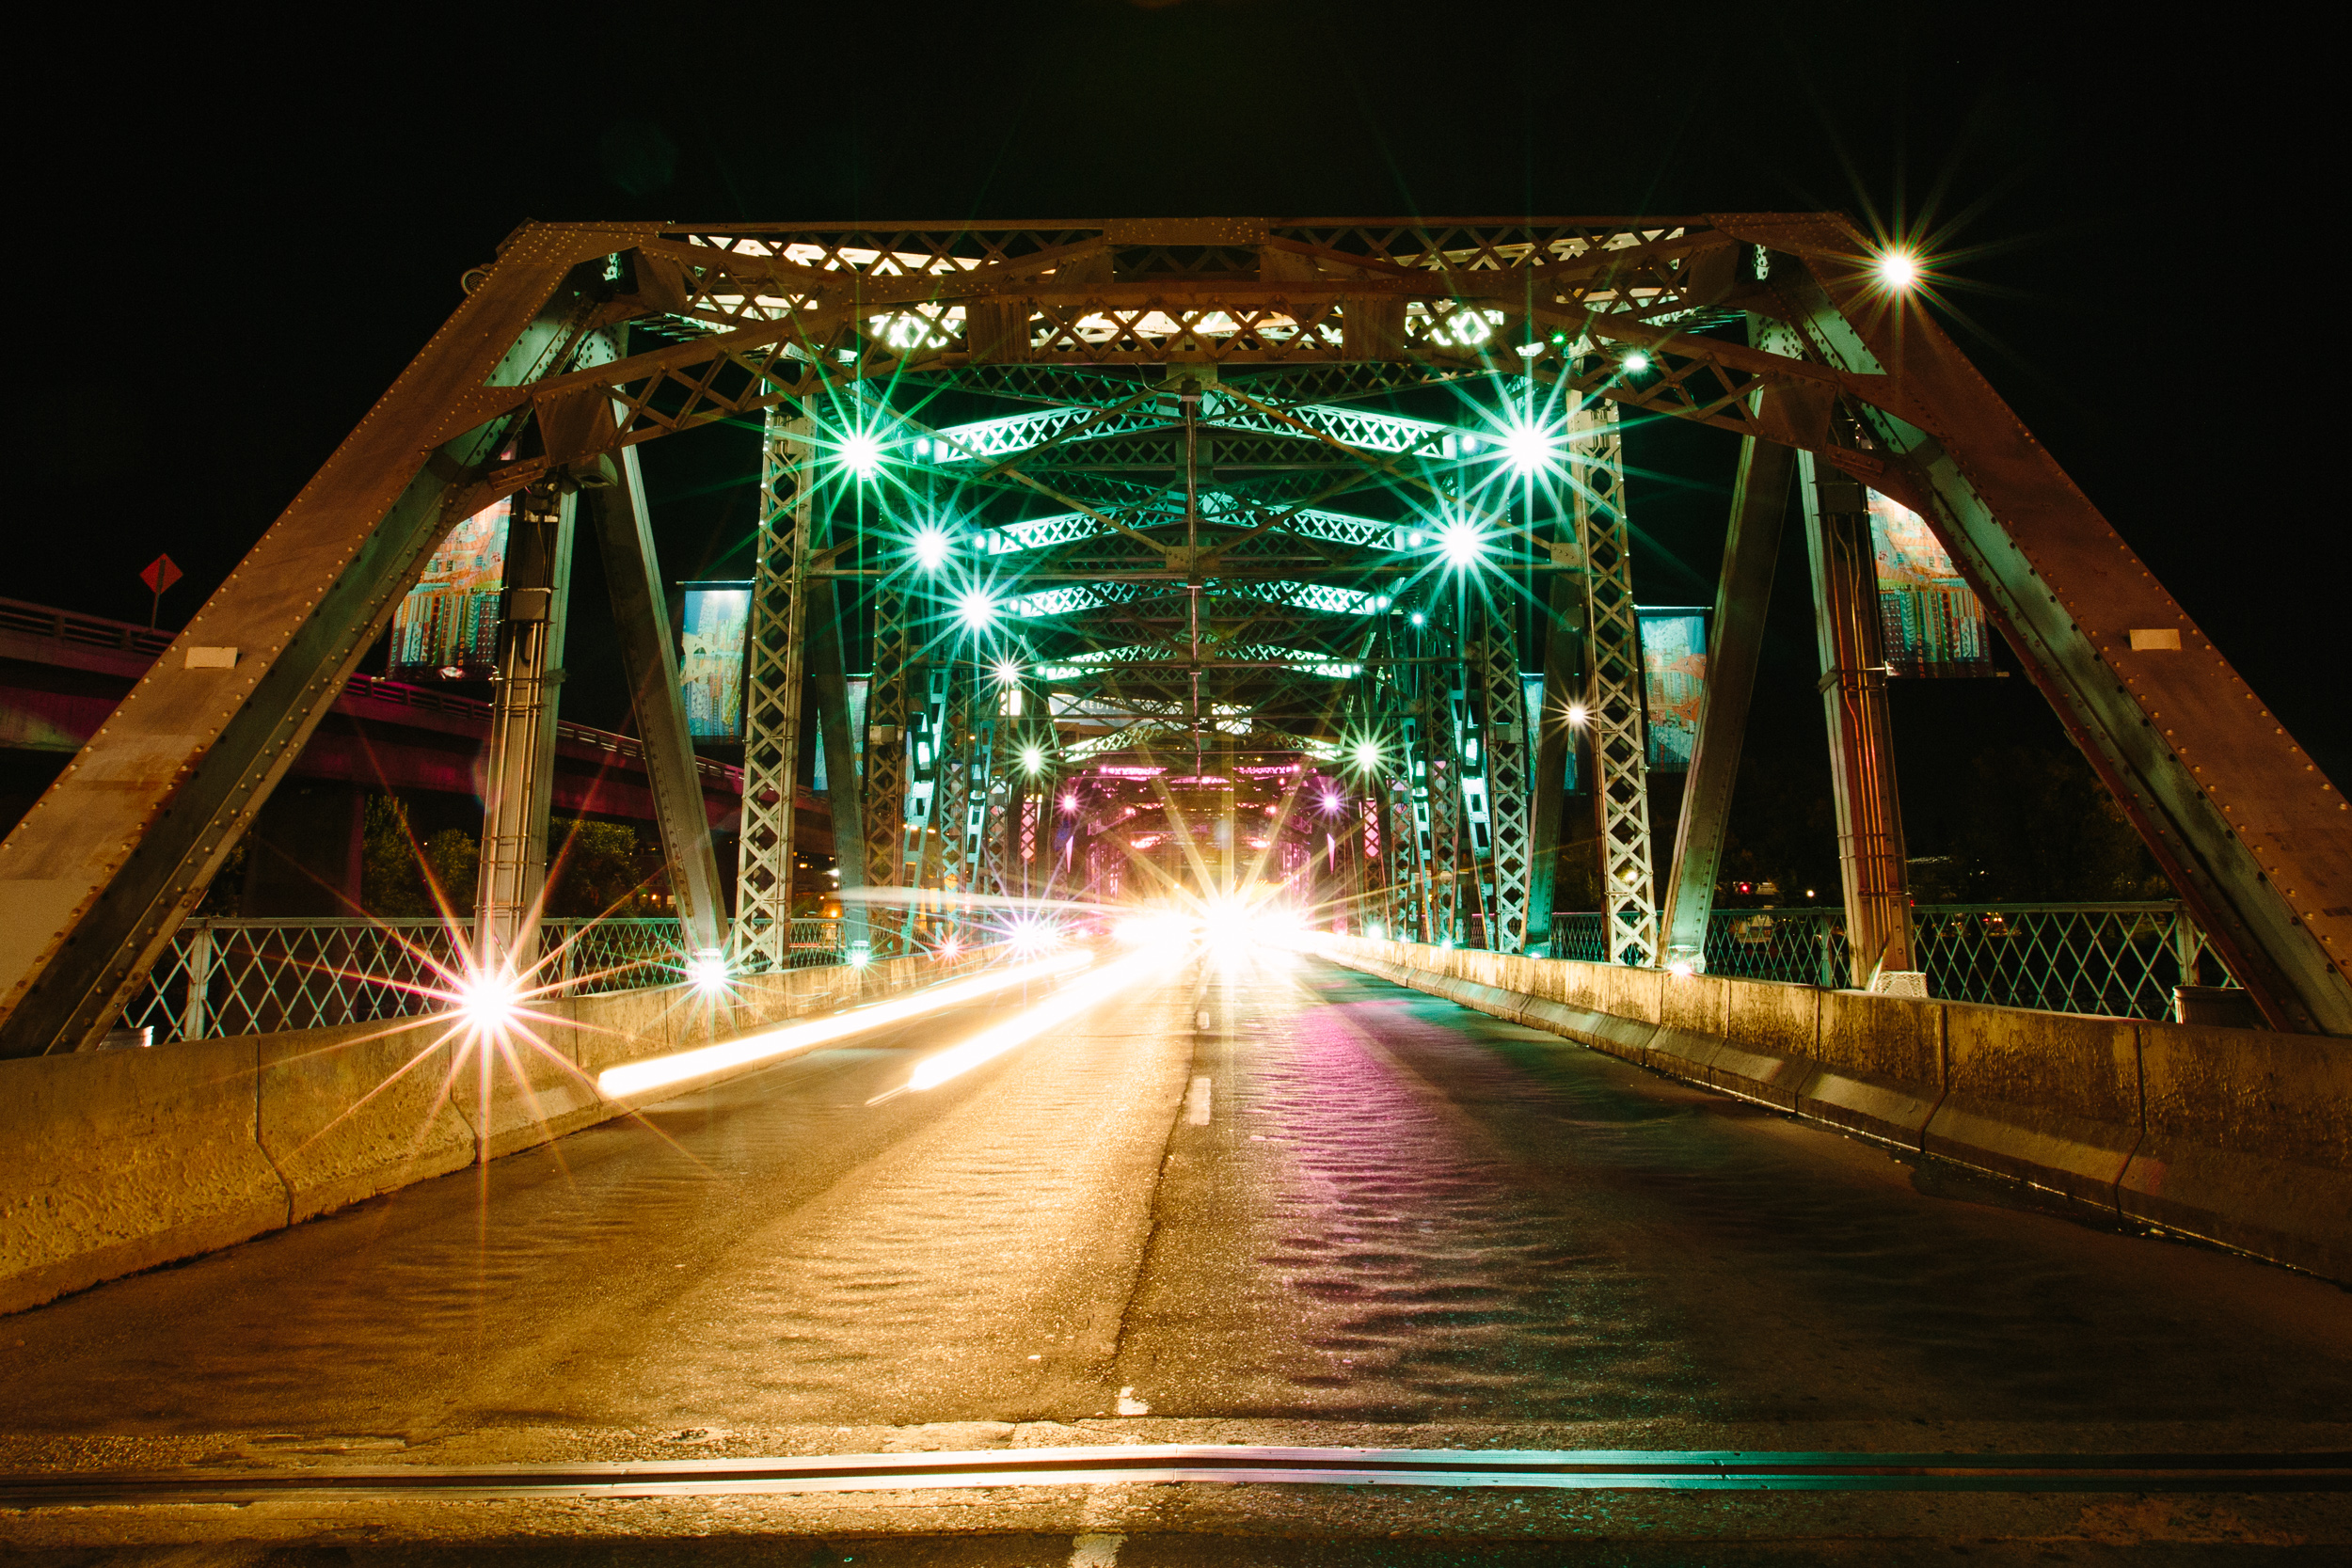 steve_seeley_langevin_bridge.jpg